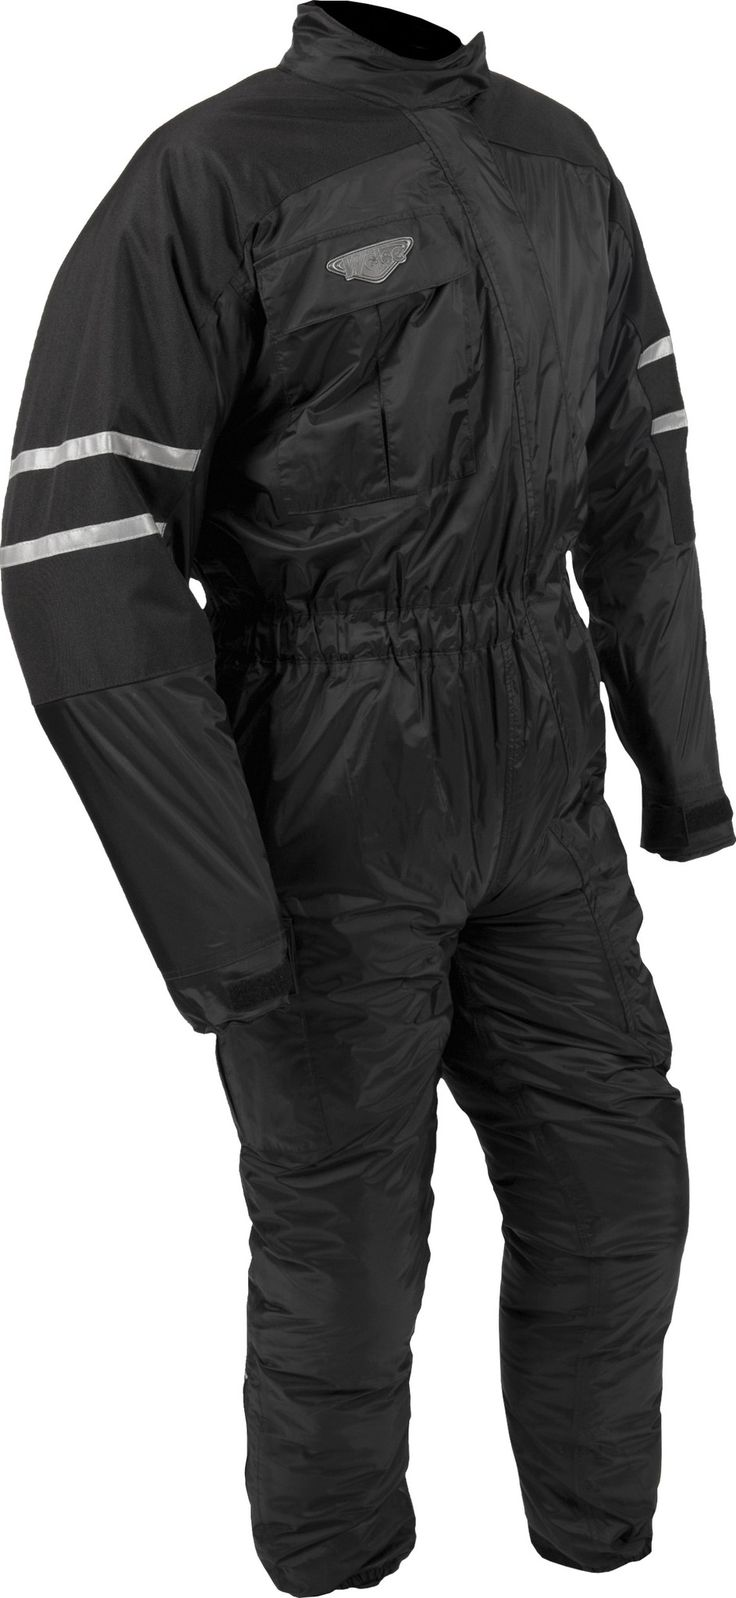 SIBERIAN - Motorcycle Rain Suit (1pc) | Motorcycles & Gear